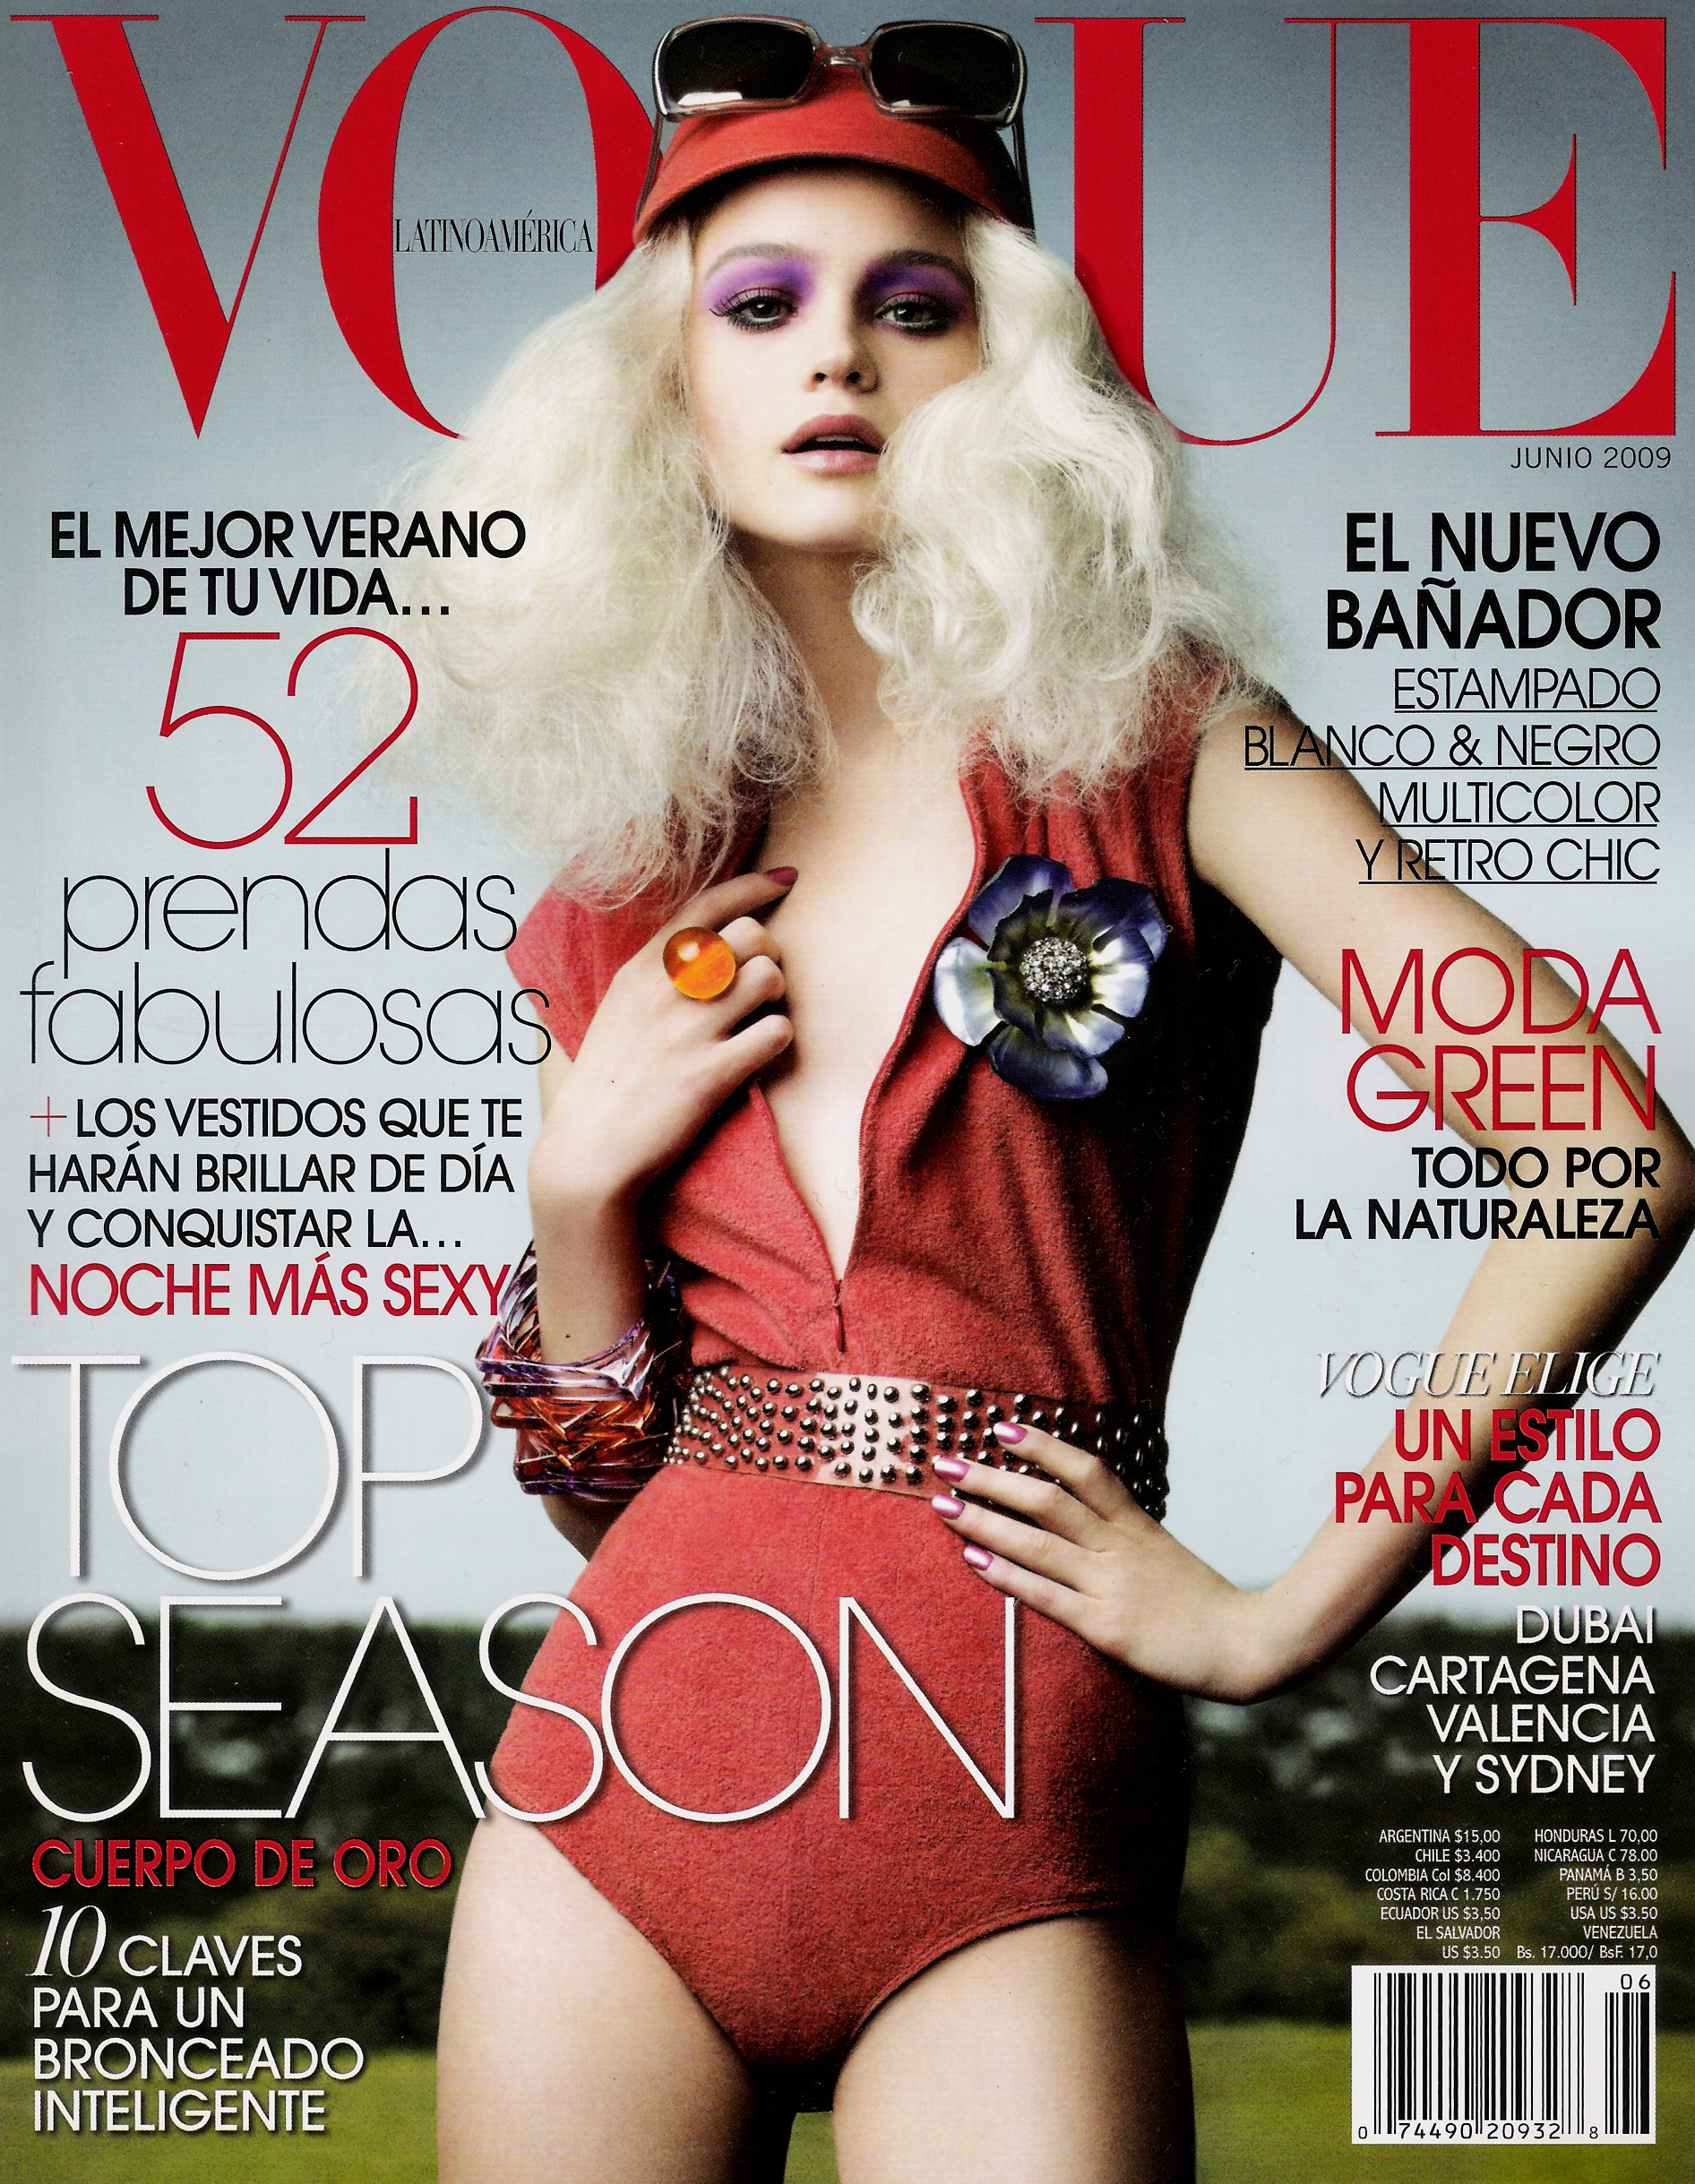 Seventeen And Vogue Magazine Have Issues, Like Body Image